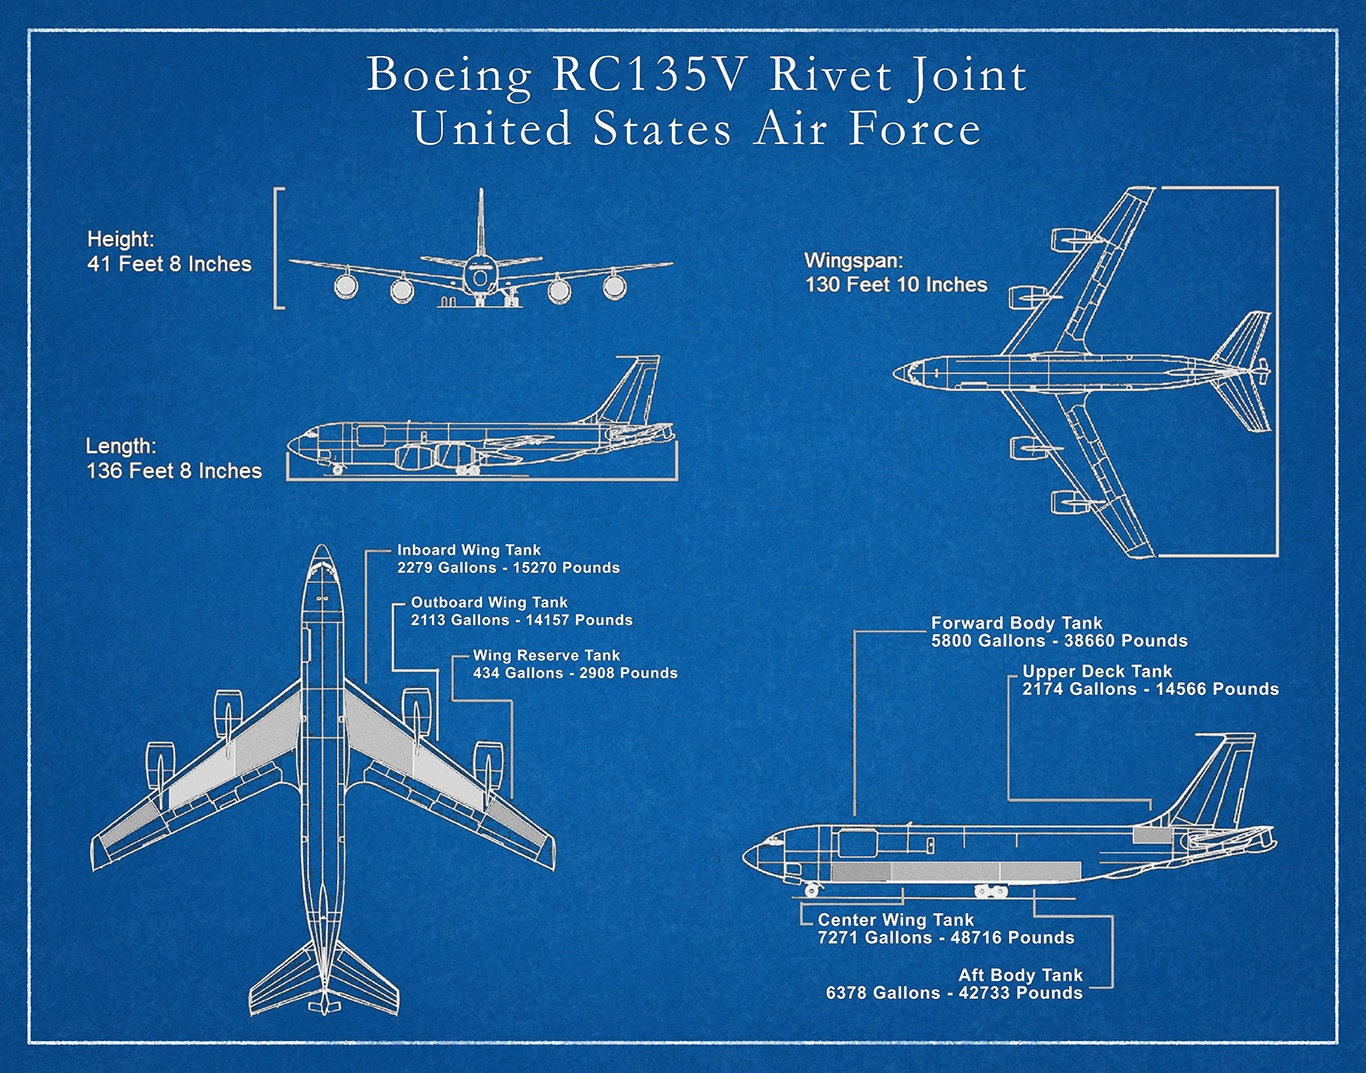 Boeing RC135V Rivet Joint United States Air Force Reconnaissance